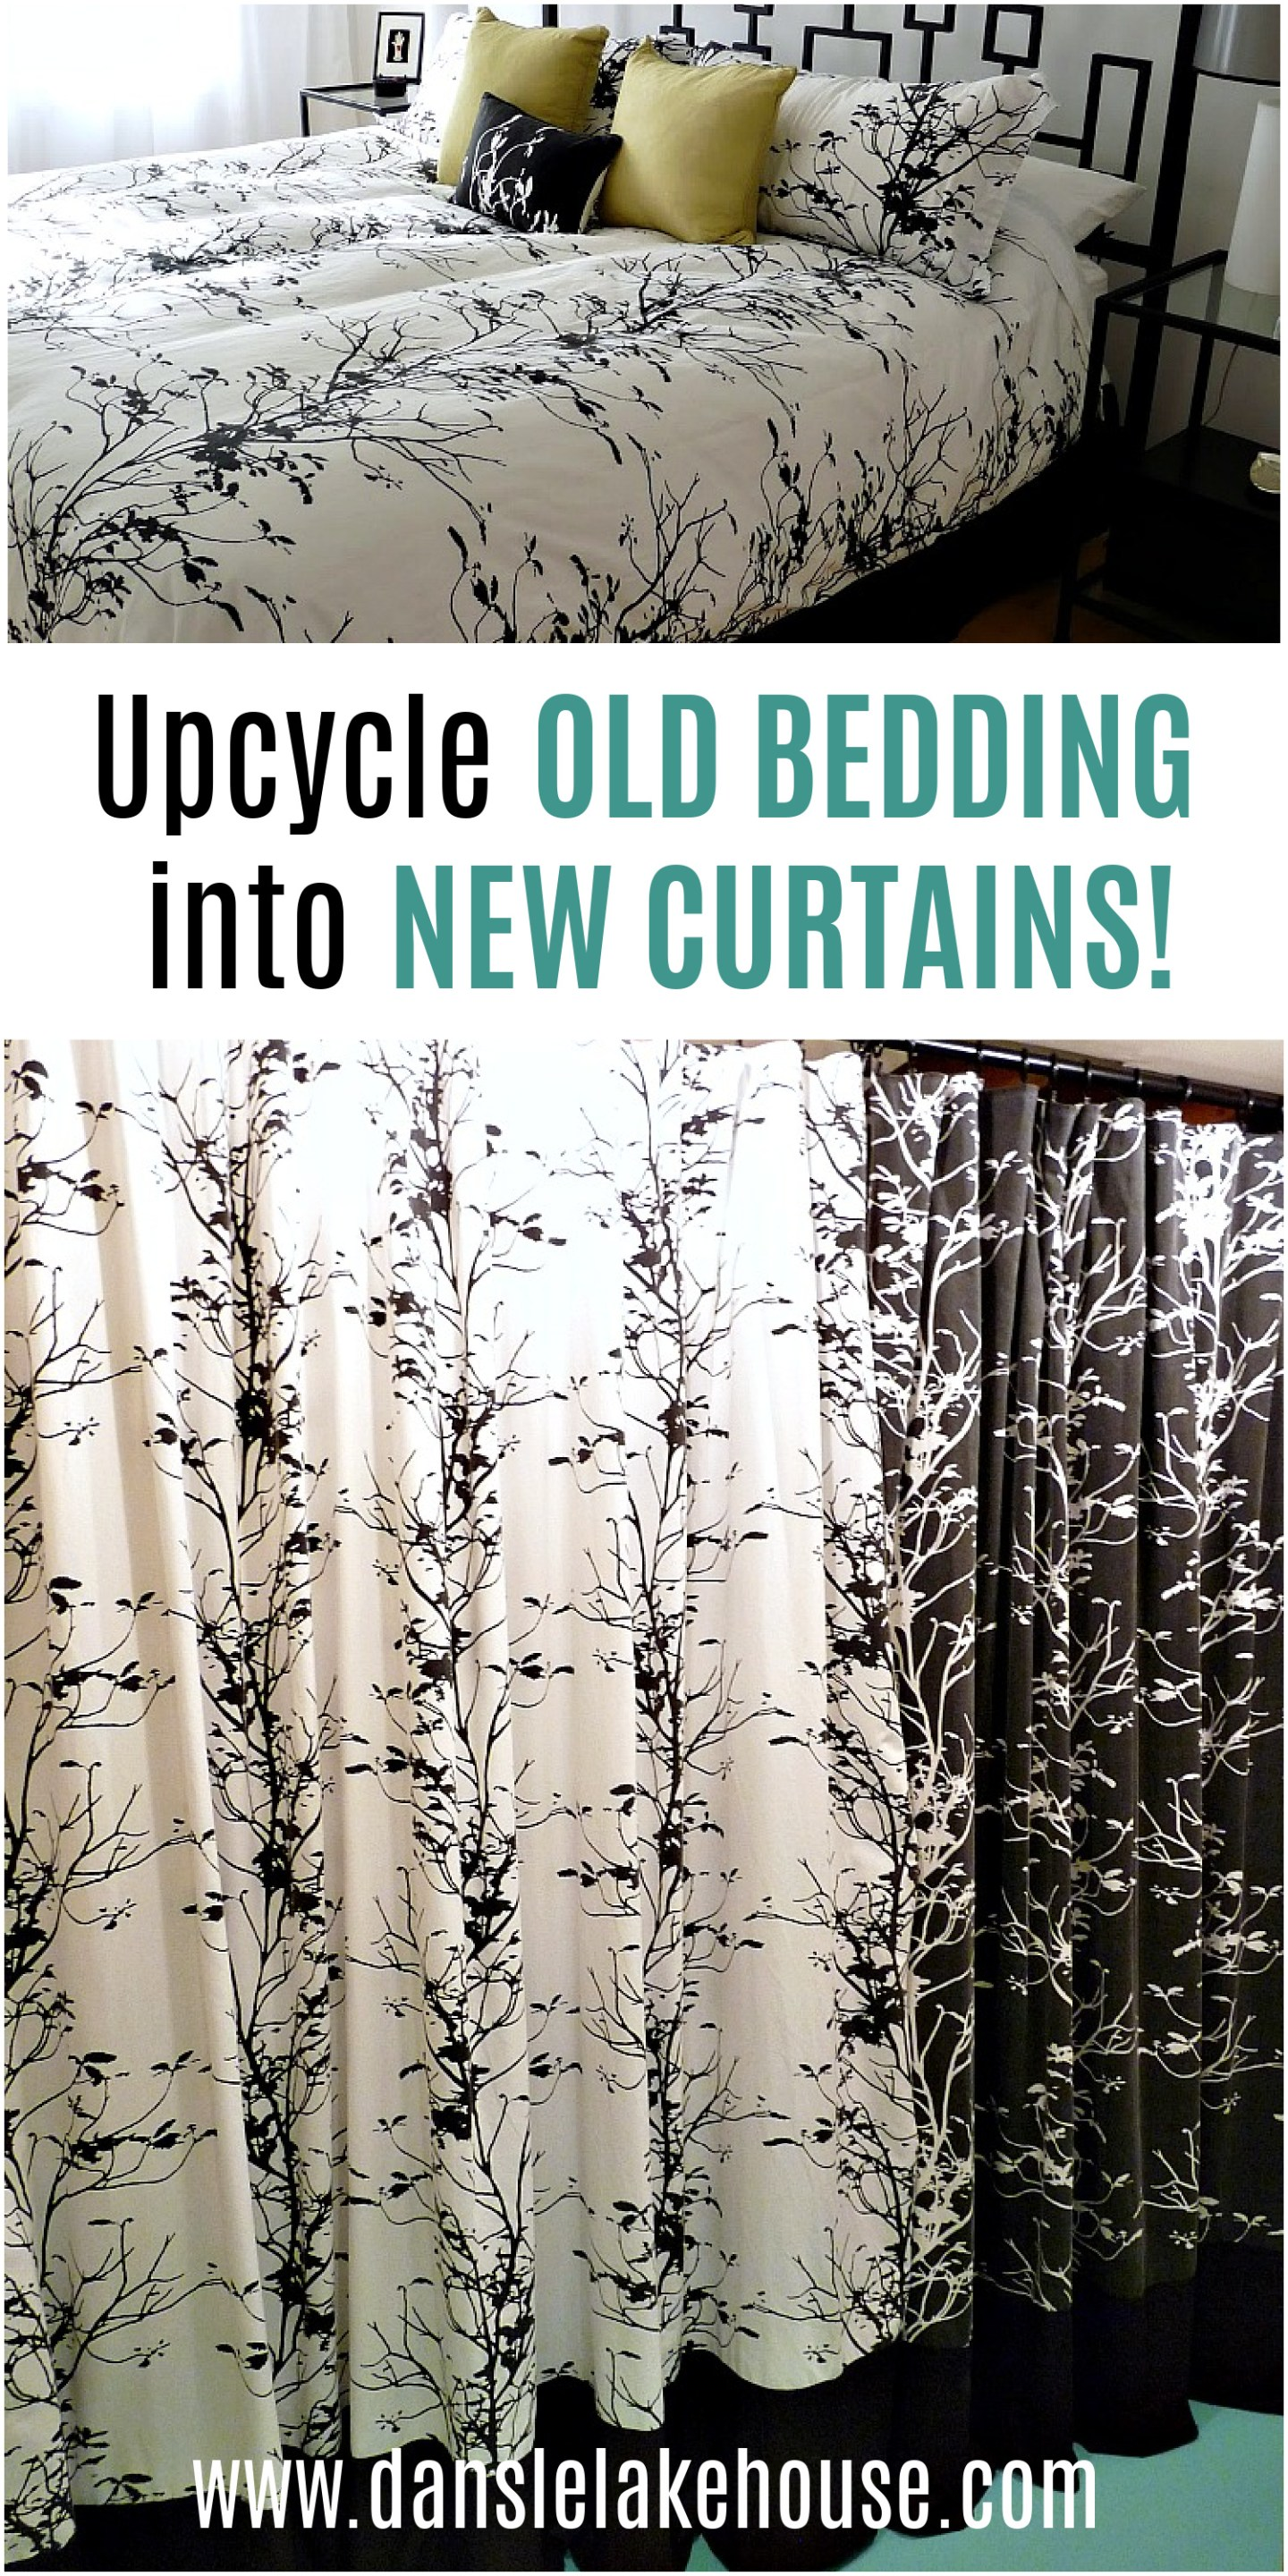 Upcycle bedding into new curtains